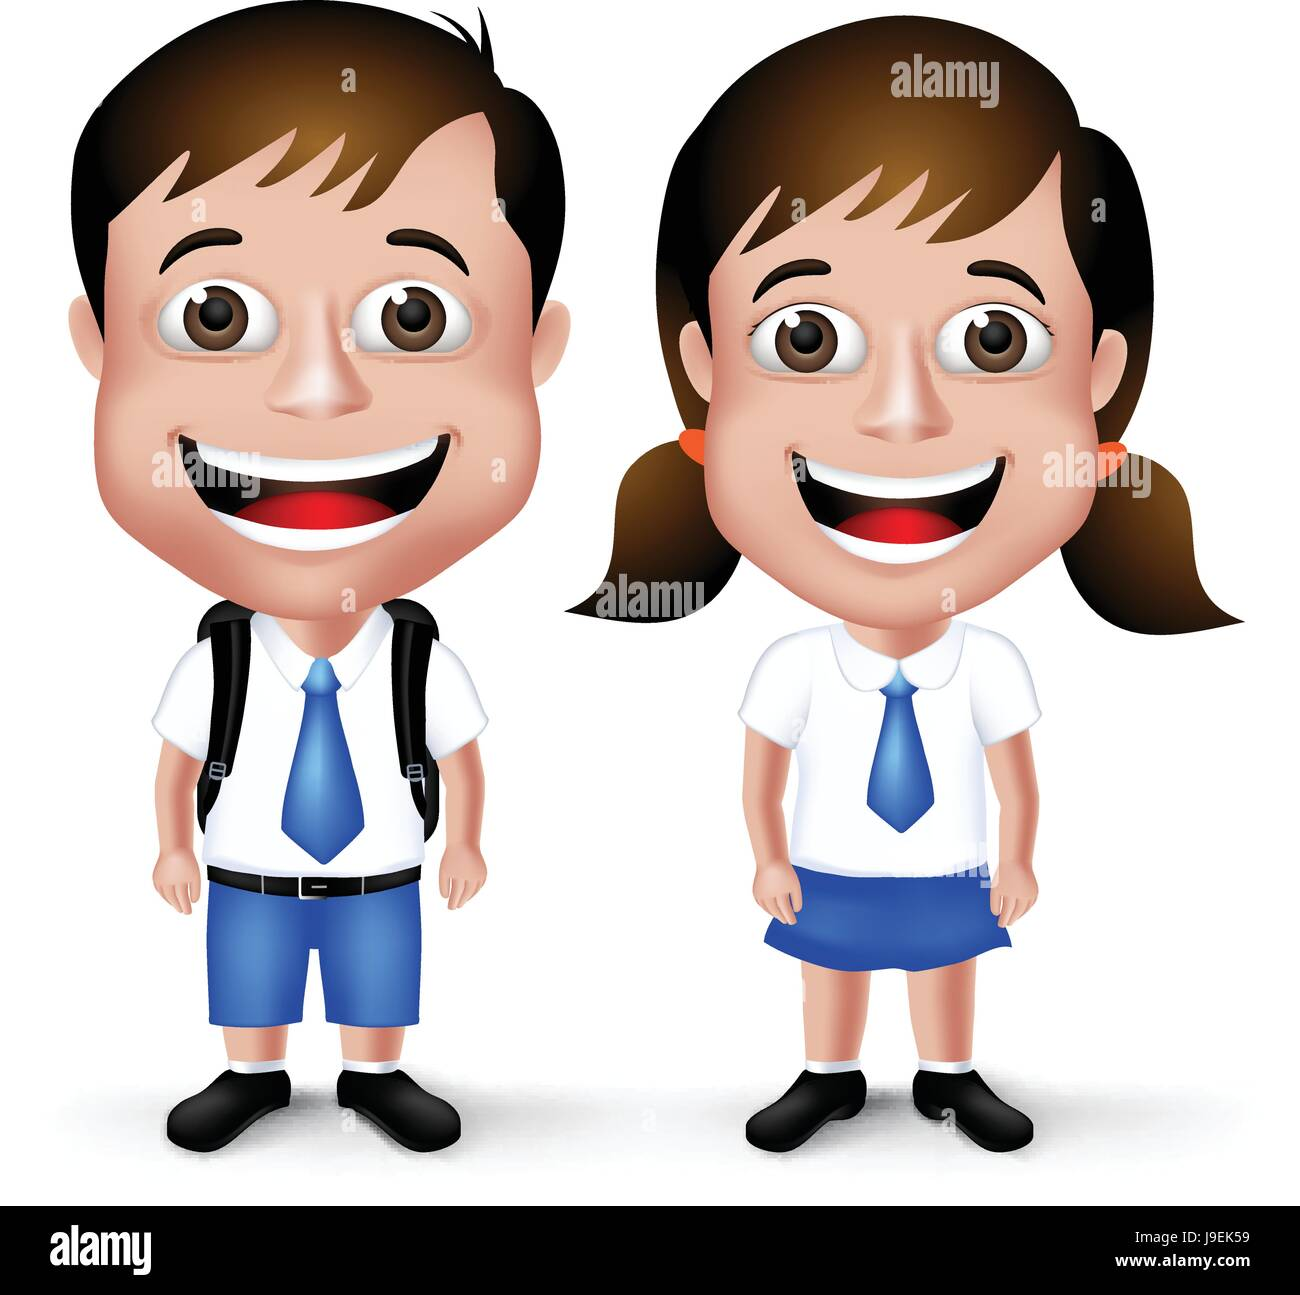 Cute School Boy and Girl Student Characters in School Uniform with Backpack  and Happy Smile Isolated in White Background. Vector Illustration 88460410ae9d4